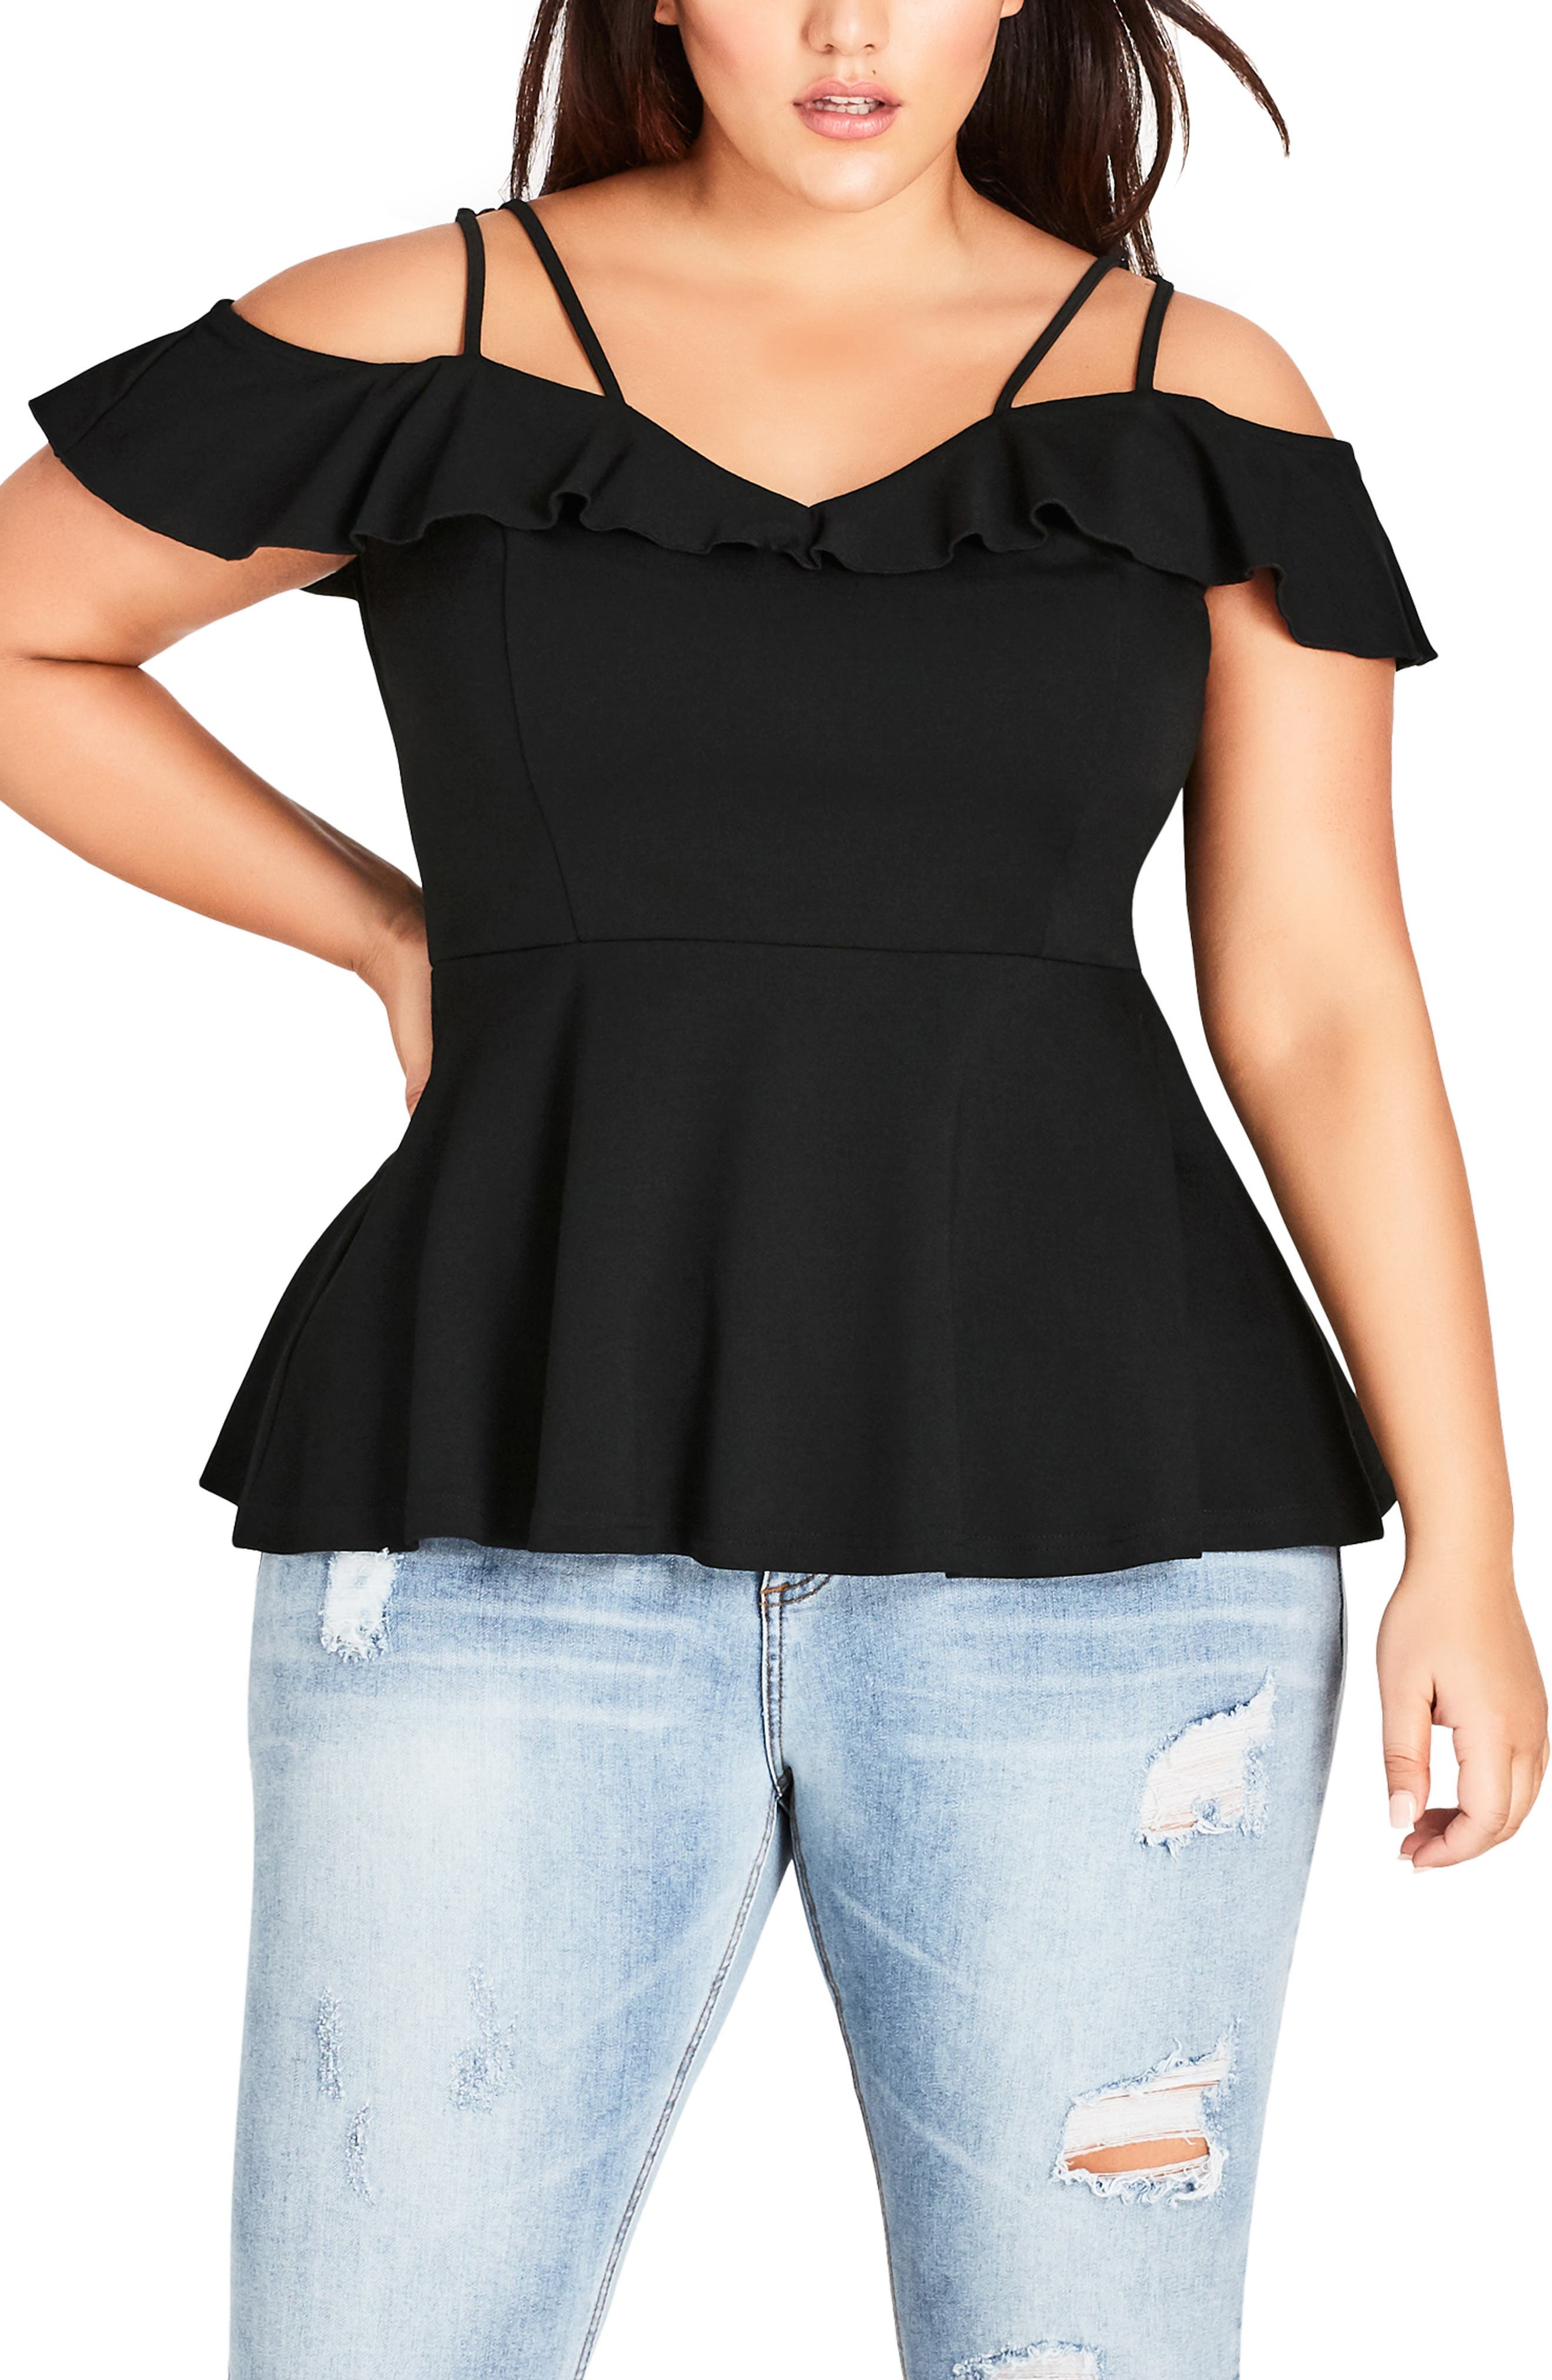 London Lover Top,                         Main,                         color, BLACK